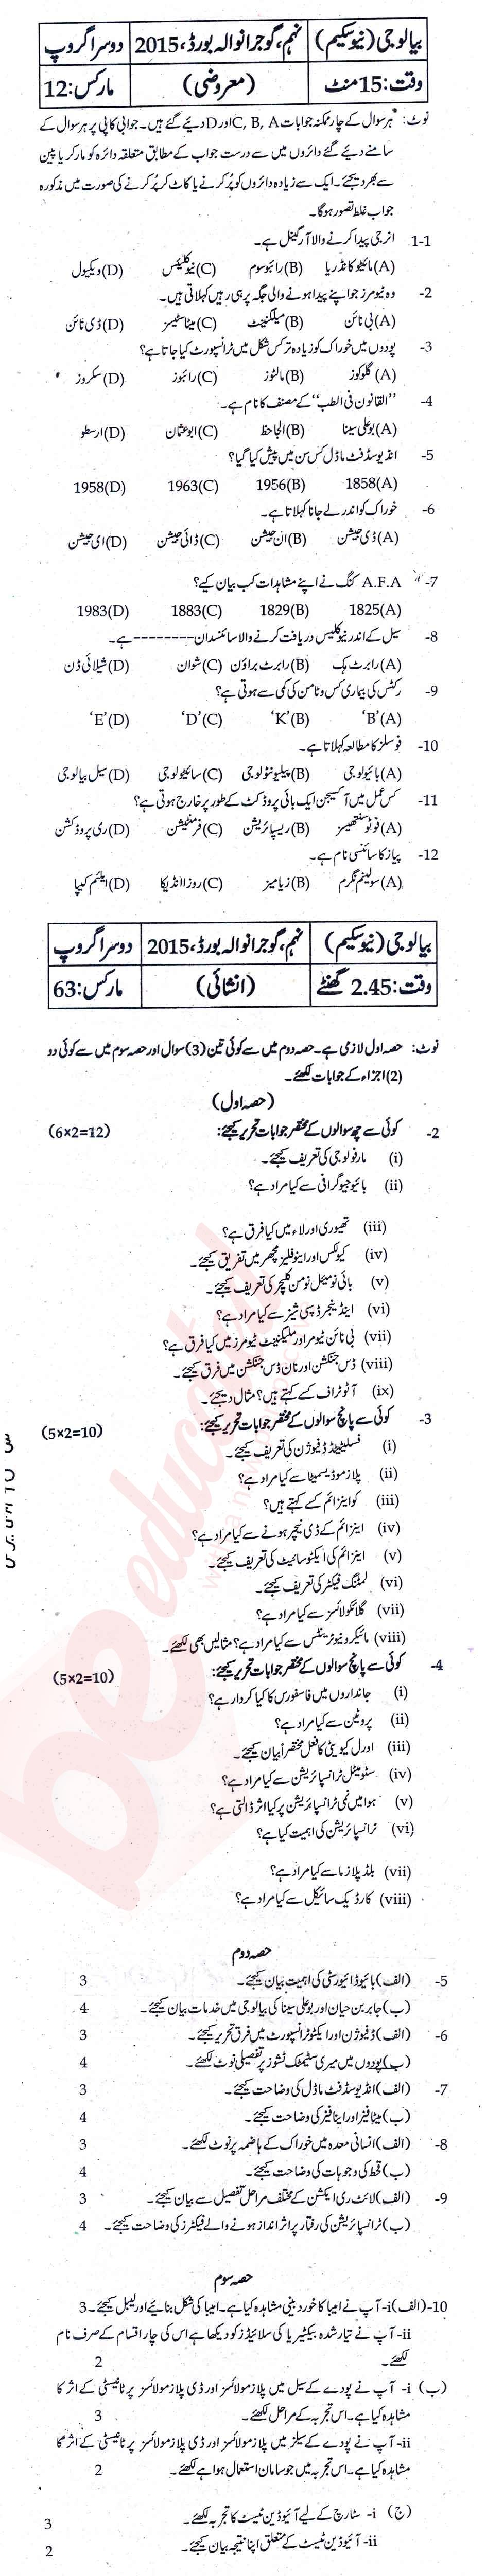 biology past paper Mdcat entry test biology past papers of are available here here pakistani students can get medical and dental colleges and universities entrance test biology sample papers.